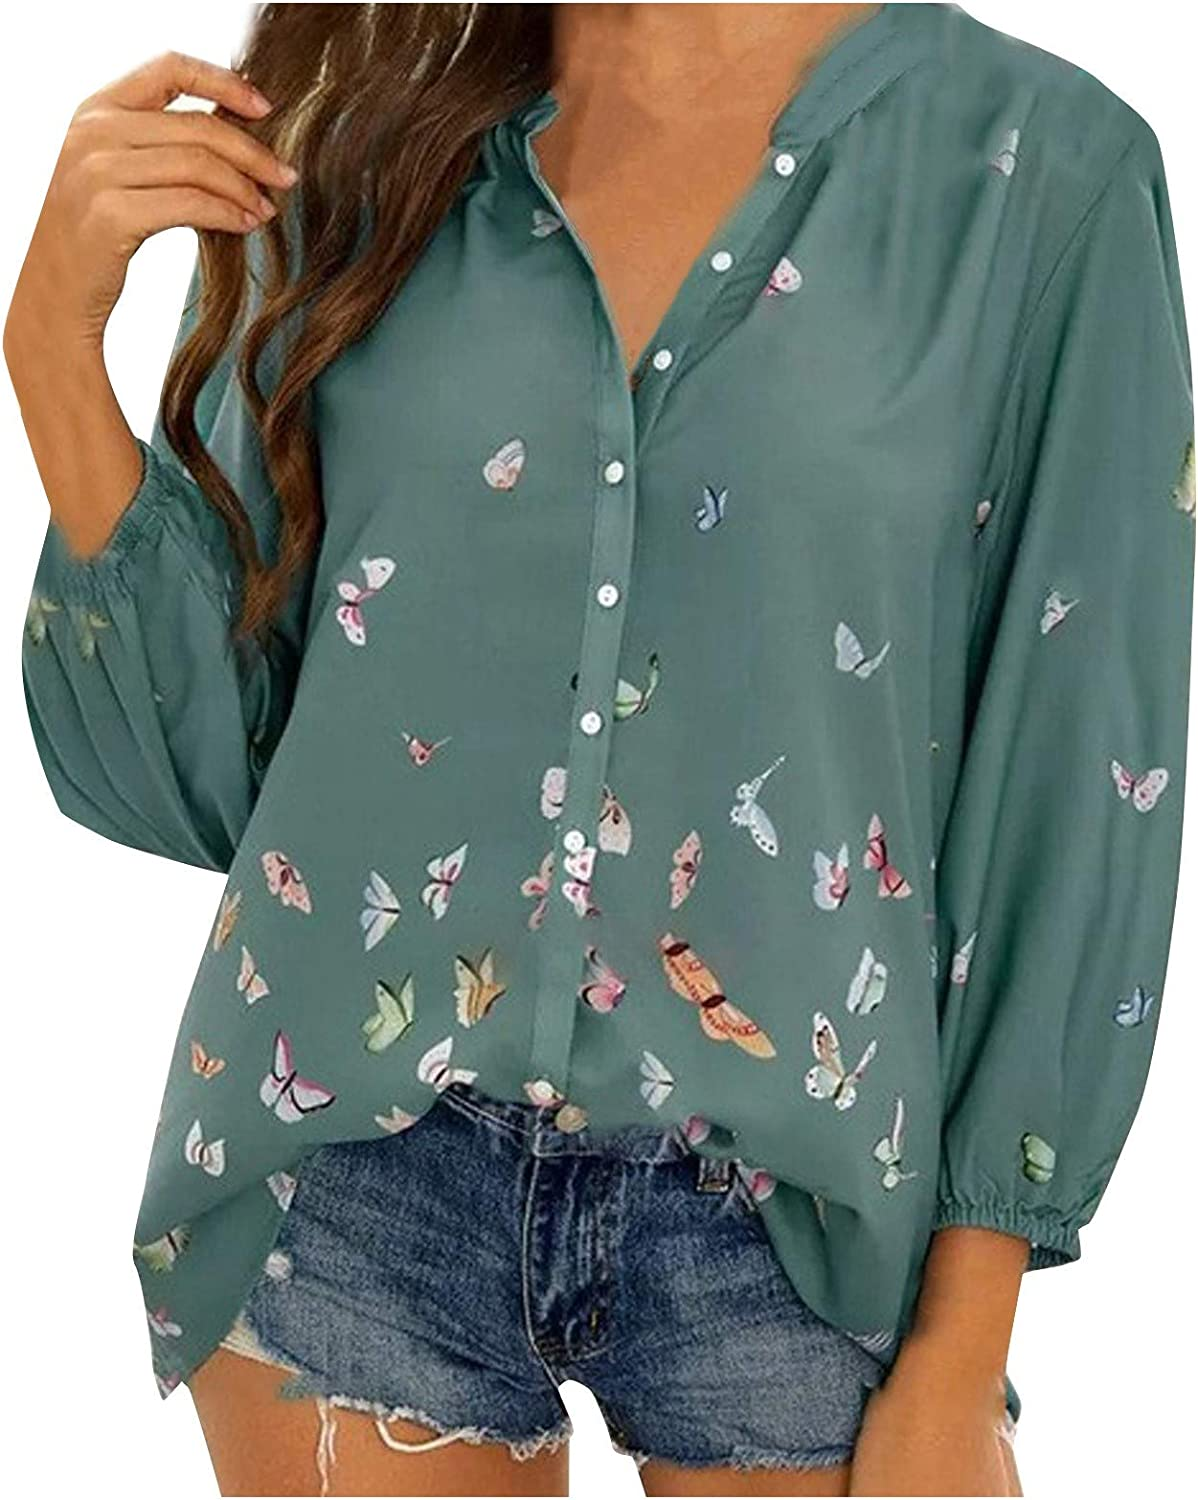 Button Down Shirts for Women 3/4 Sleeve Colorful Butterflies Print V Neck Spring Summer Blouse Casual Loose Tops